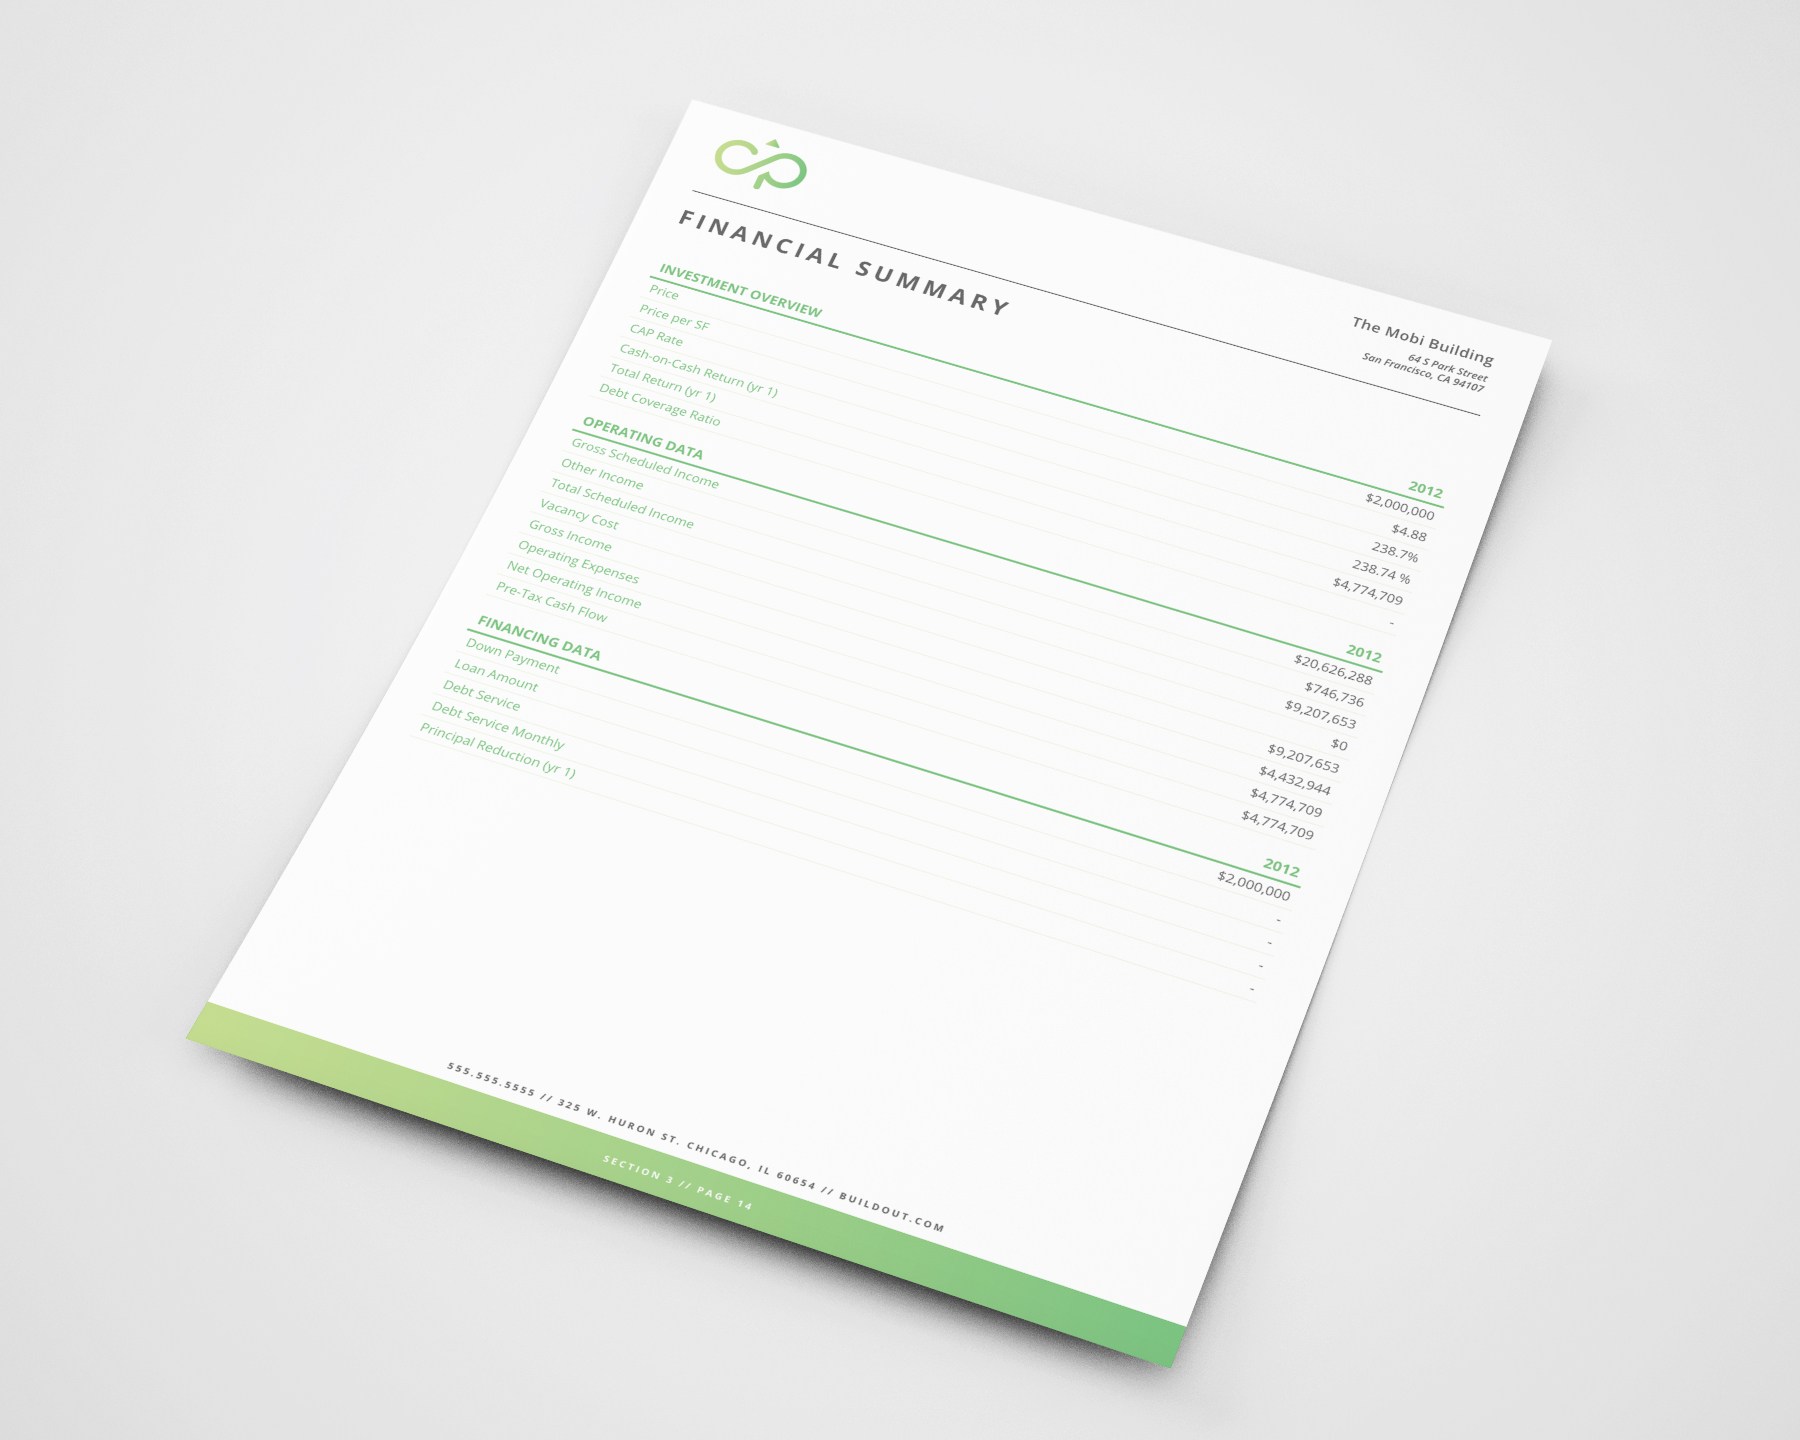 An example Financial Summary page from a proposal created in Buildout